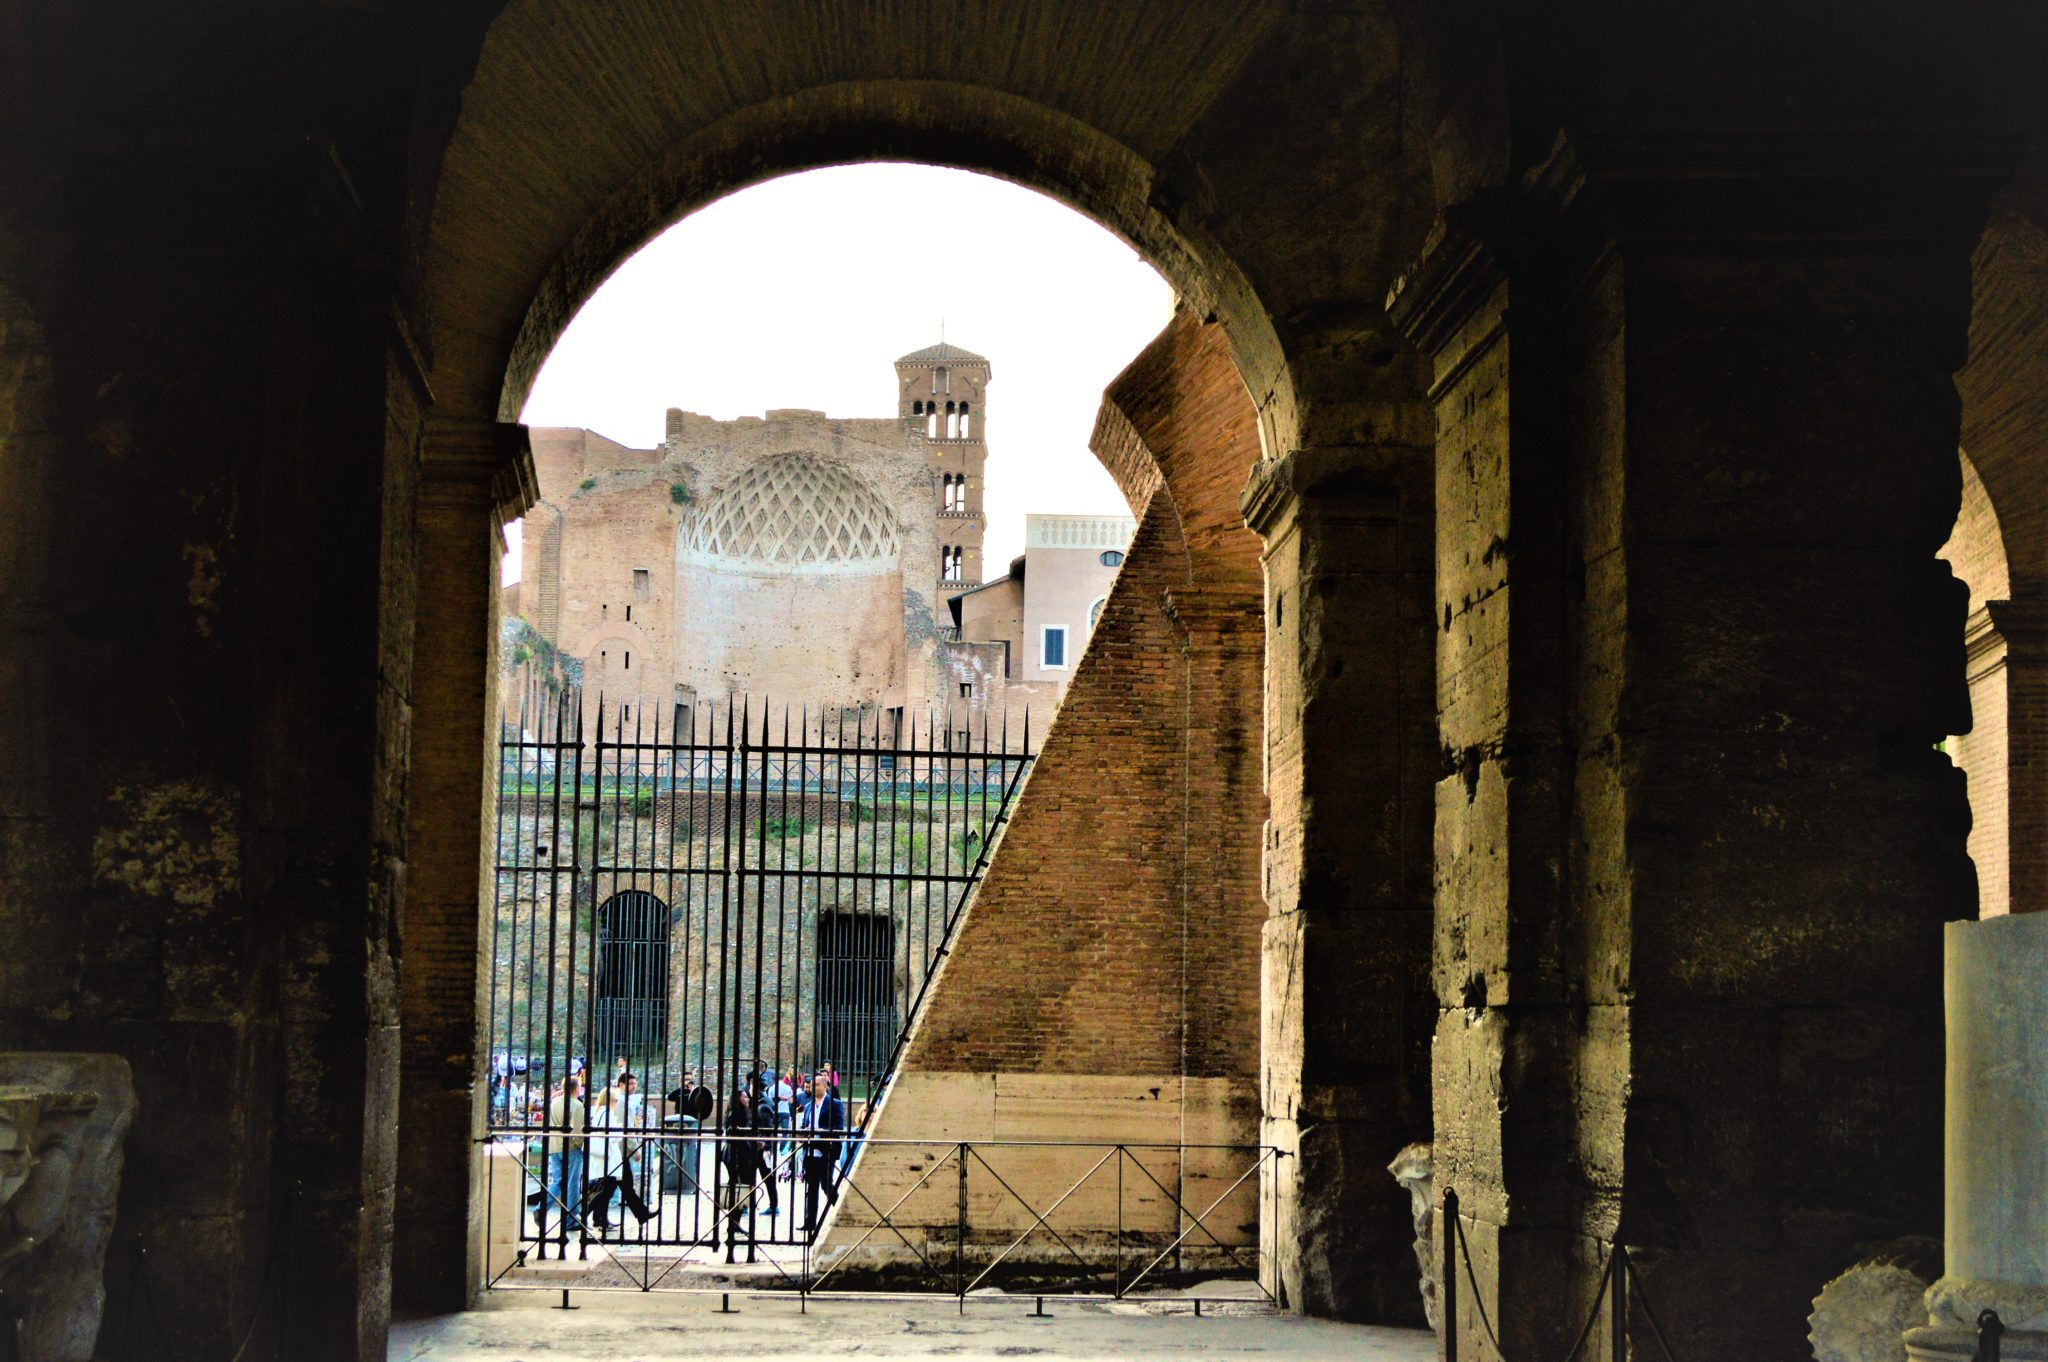 View of outside from the Roman Colosseum, Rome, Italy